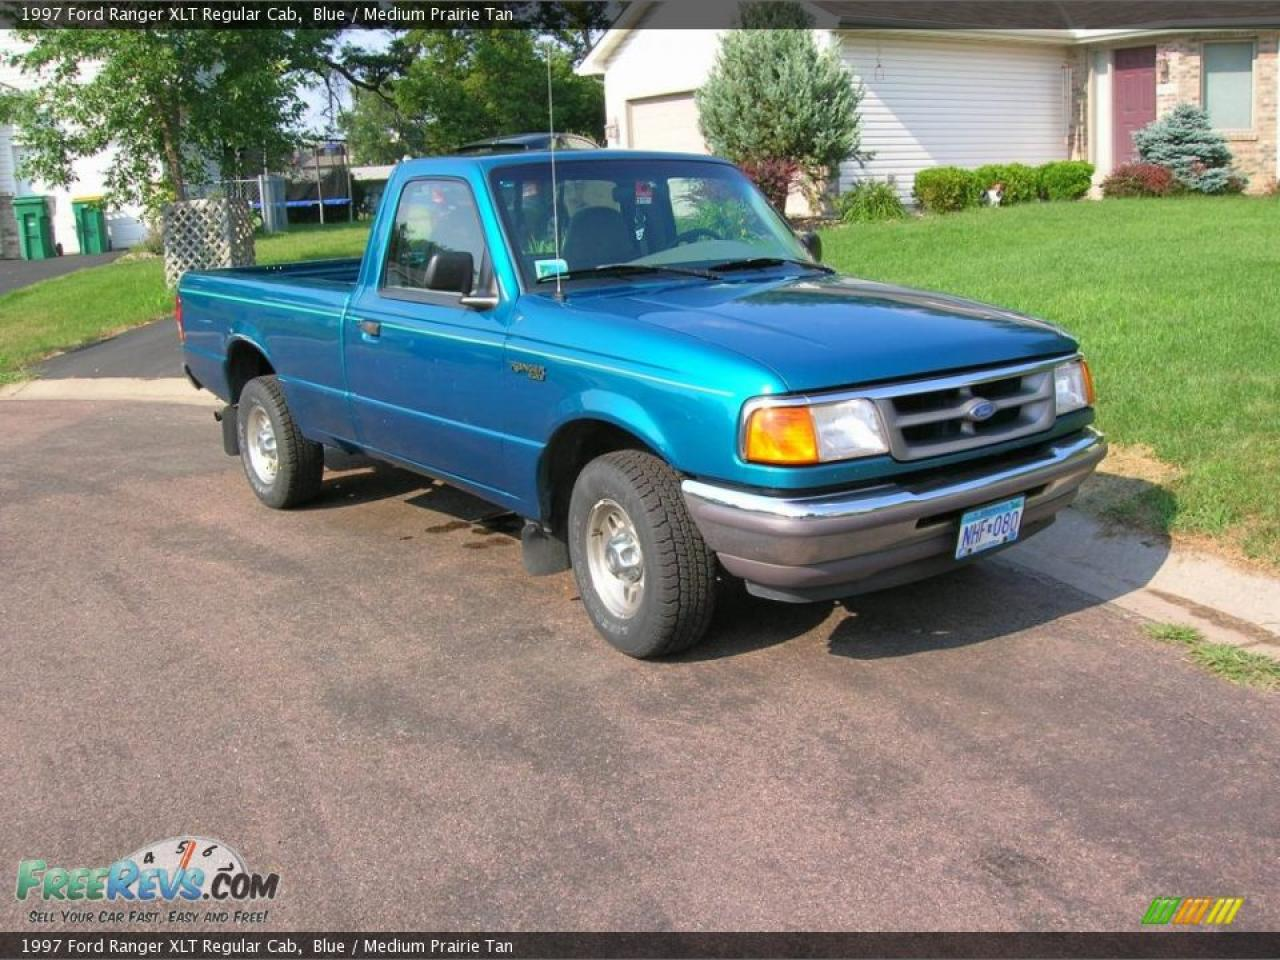 800 1024 1280 1600 origin 1997 ford ranger